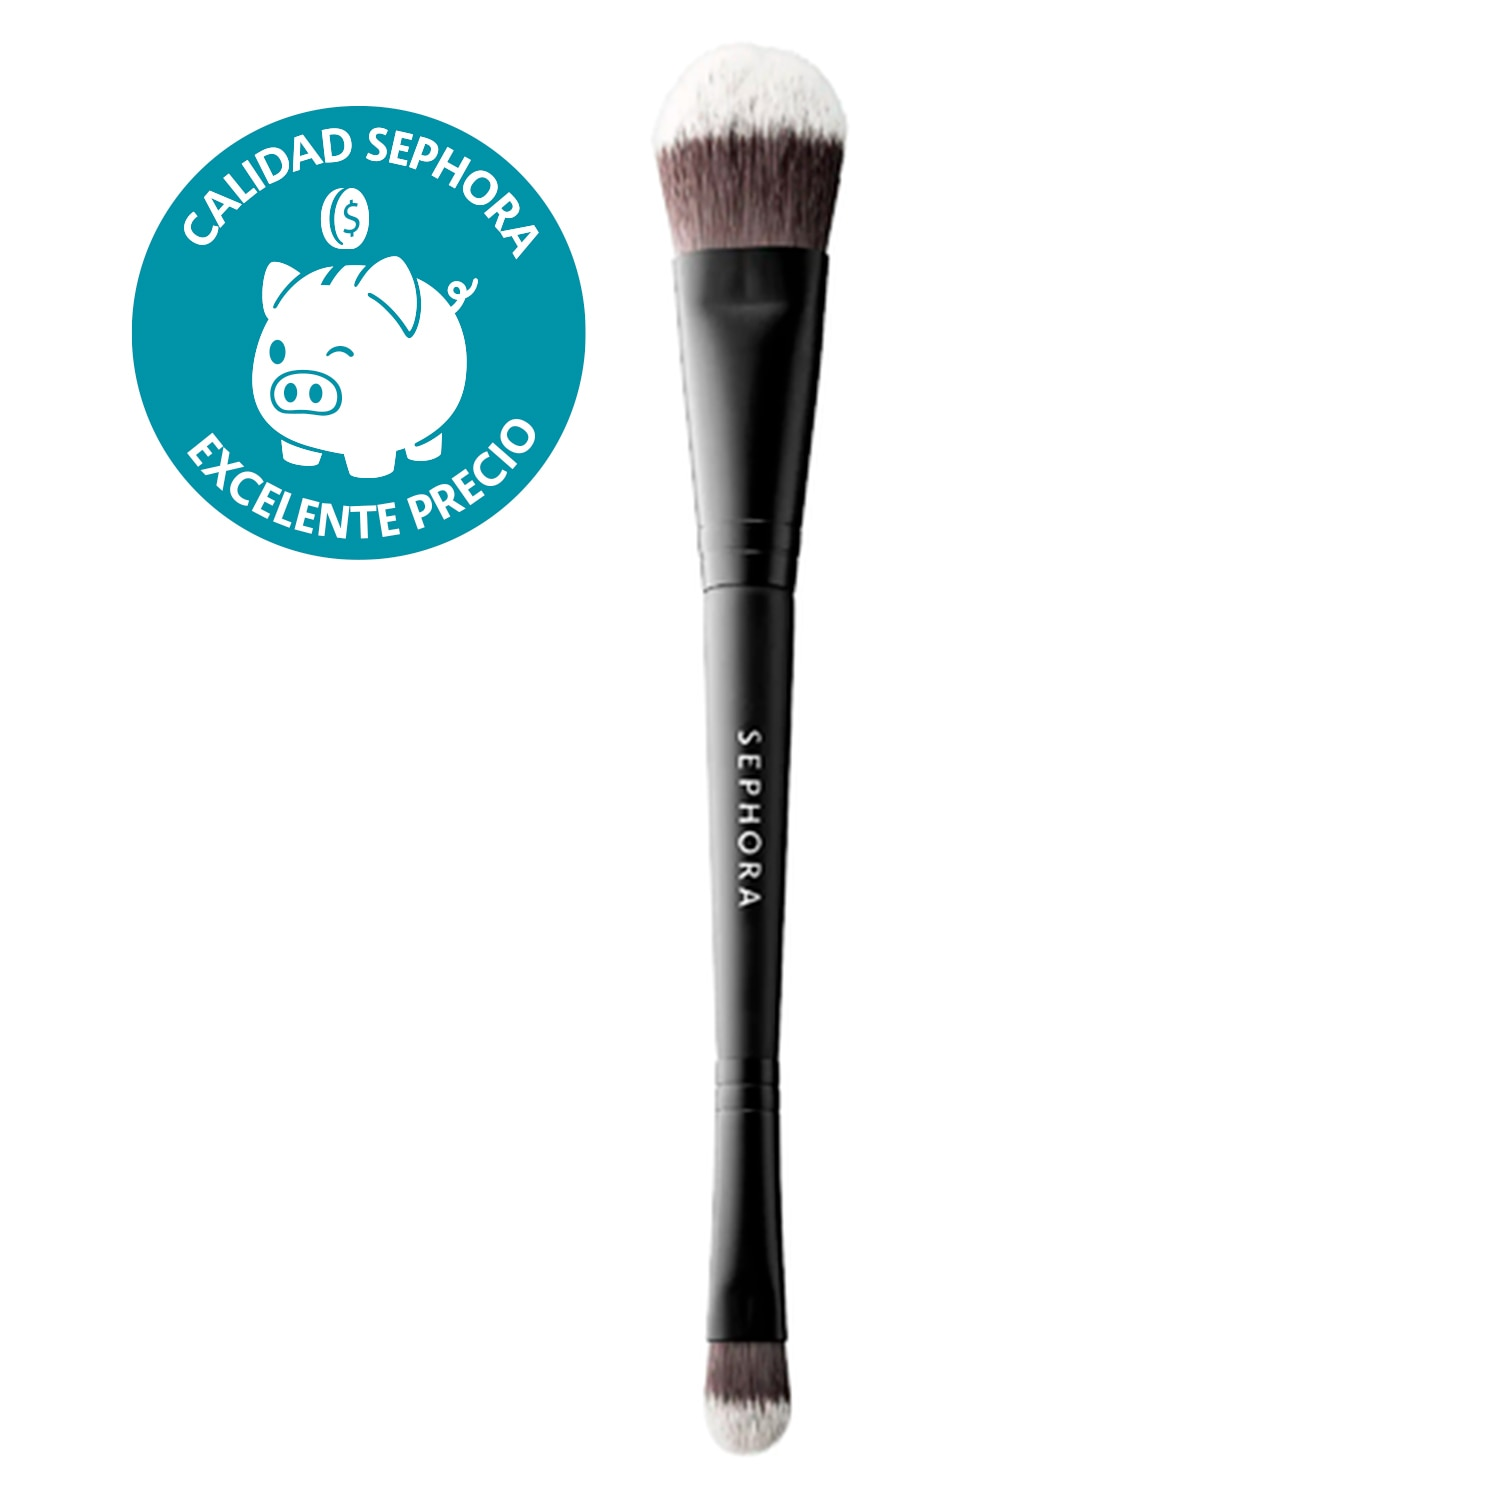 FOUNDATION & CONCEALER BRUSH #203 (BROCHA PARA CORRECTOR)